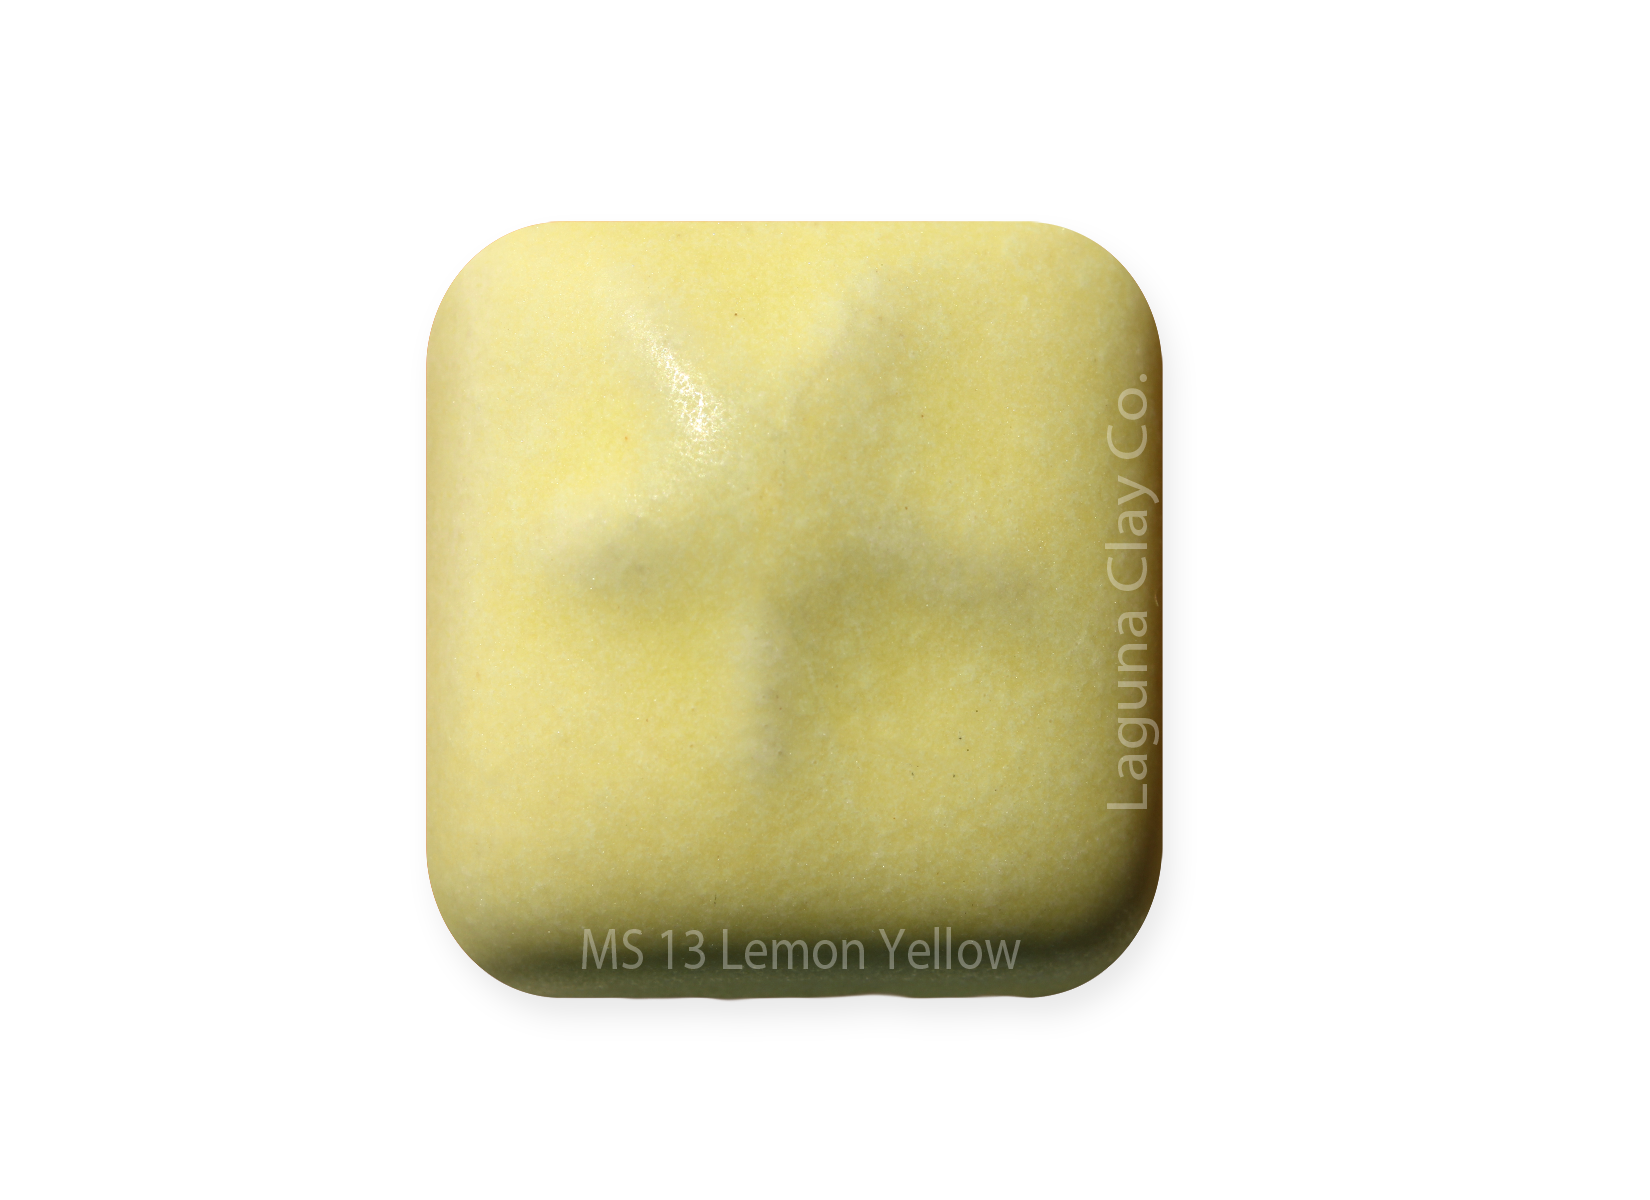 MS-13 Lemon Yellow